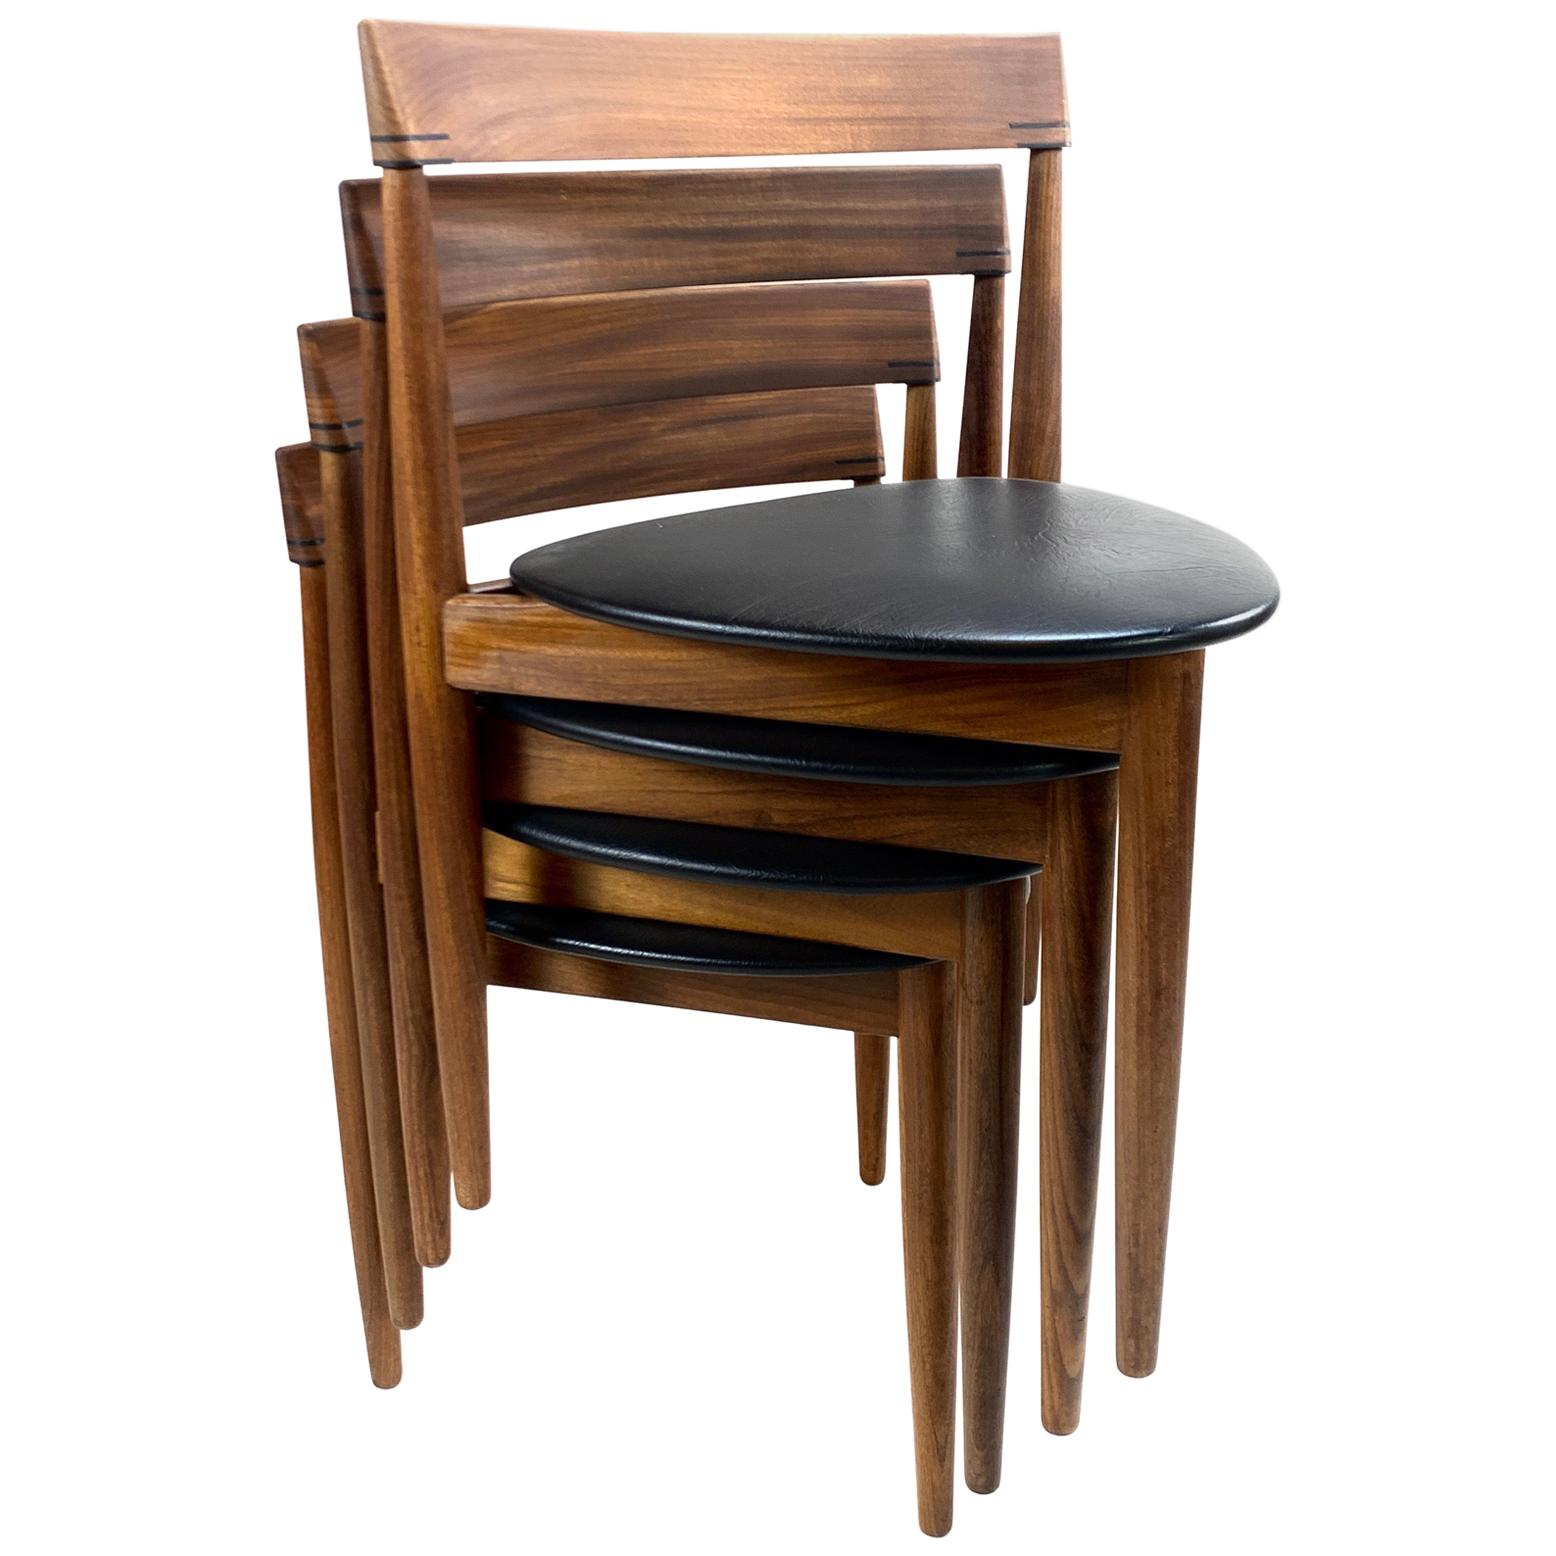 Exceptional Set of 4 Hans Olsen for Frem Røjle Walnut and Leather Dining Chairs